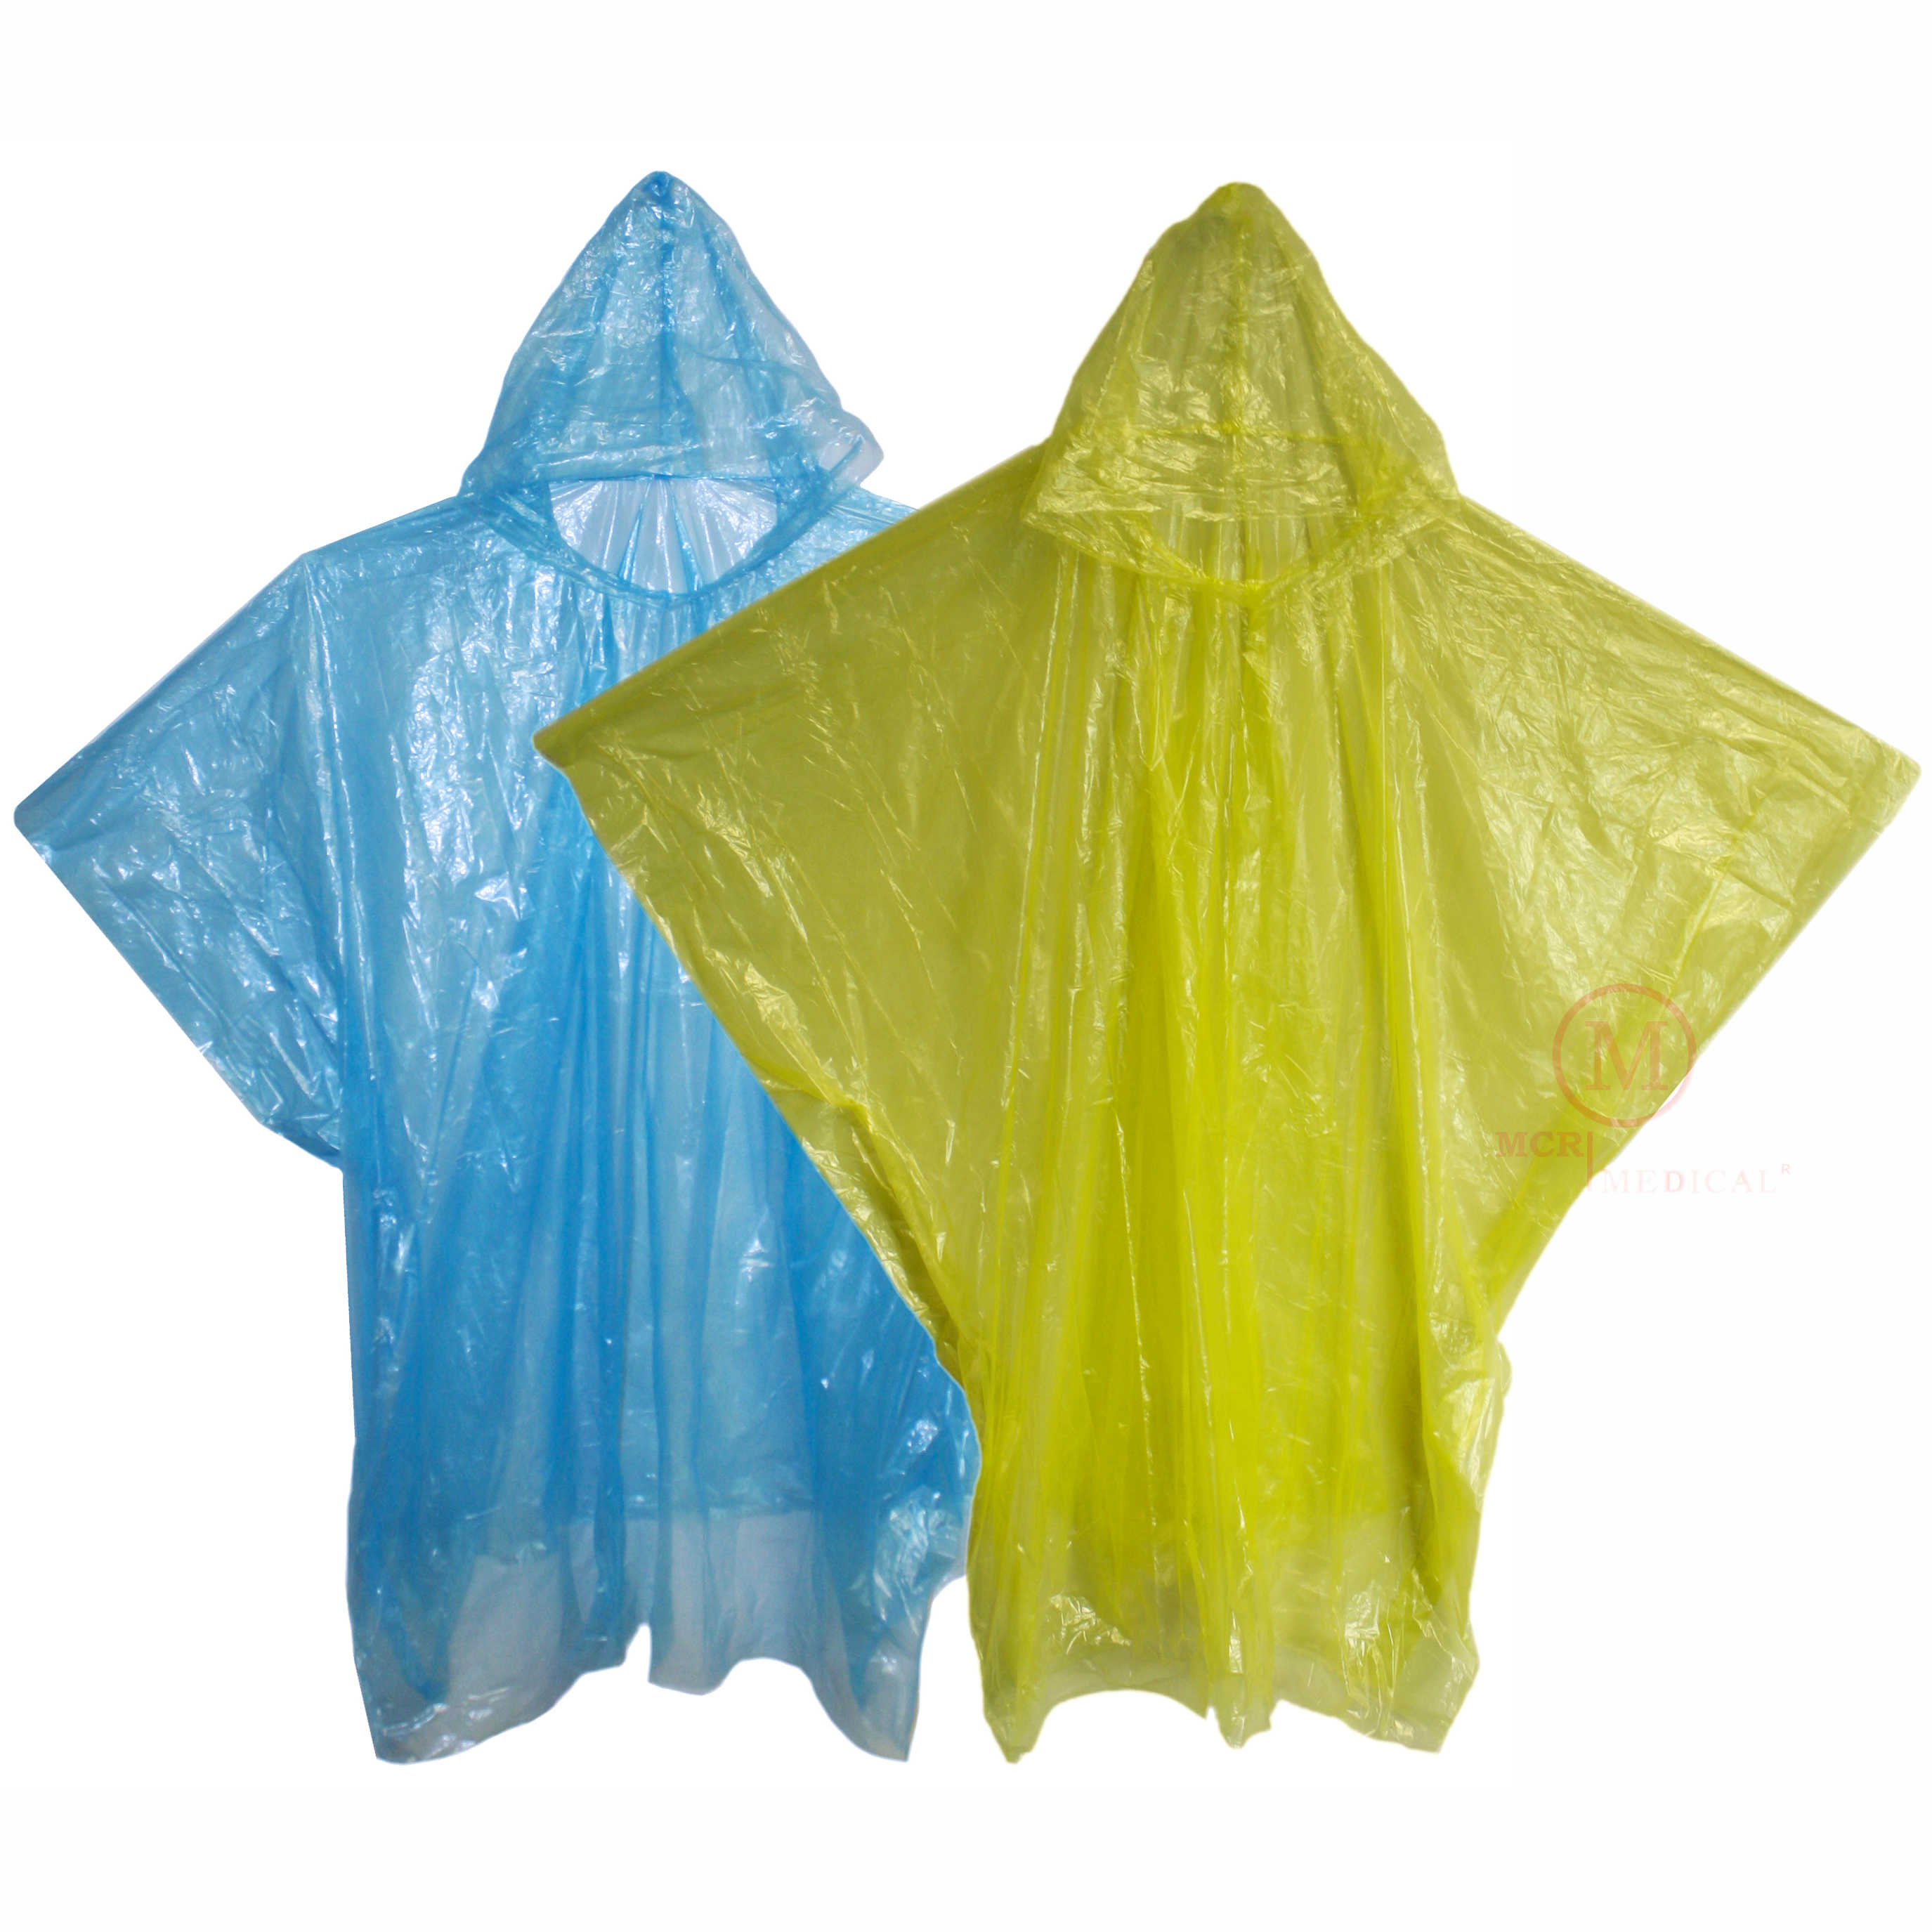 Emergency First Aid Kit With Rain Poncho And Mask